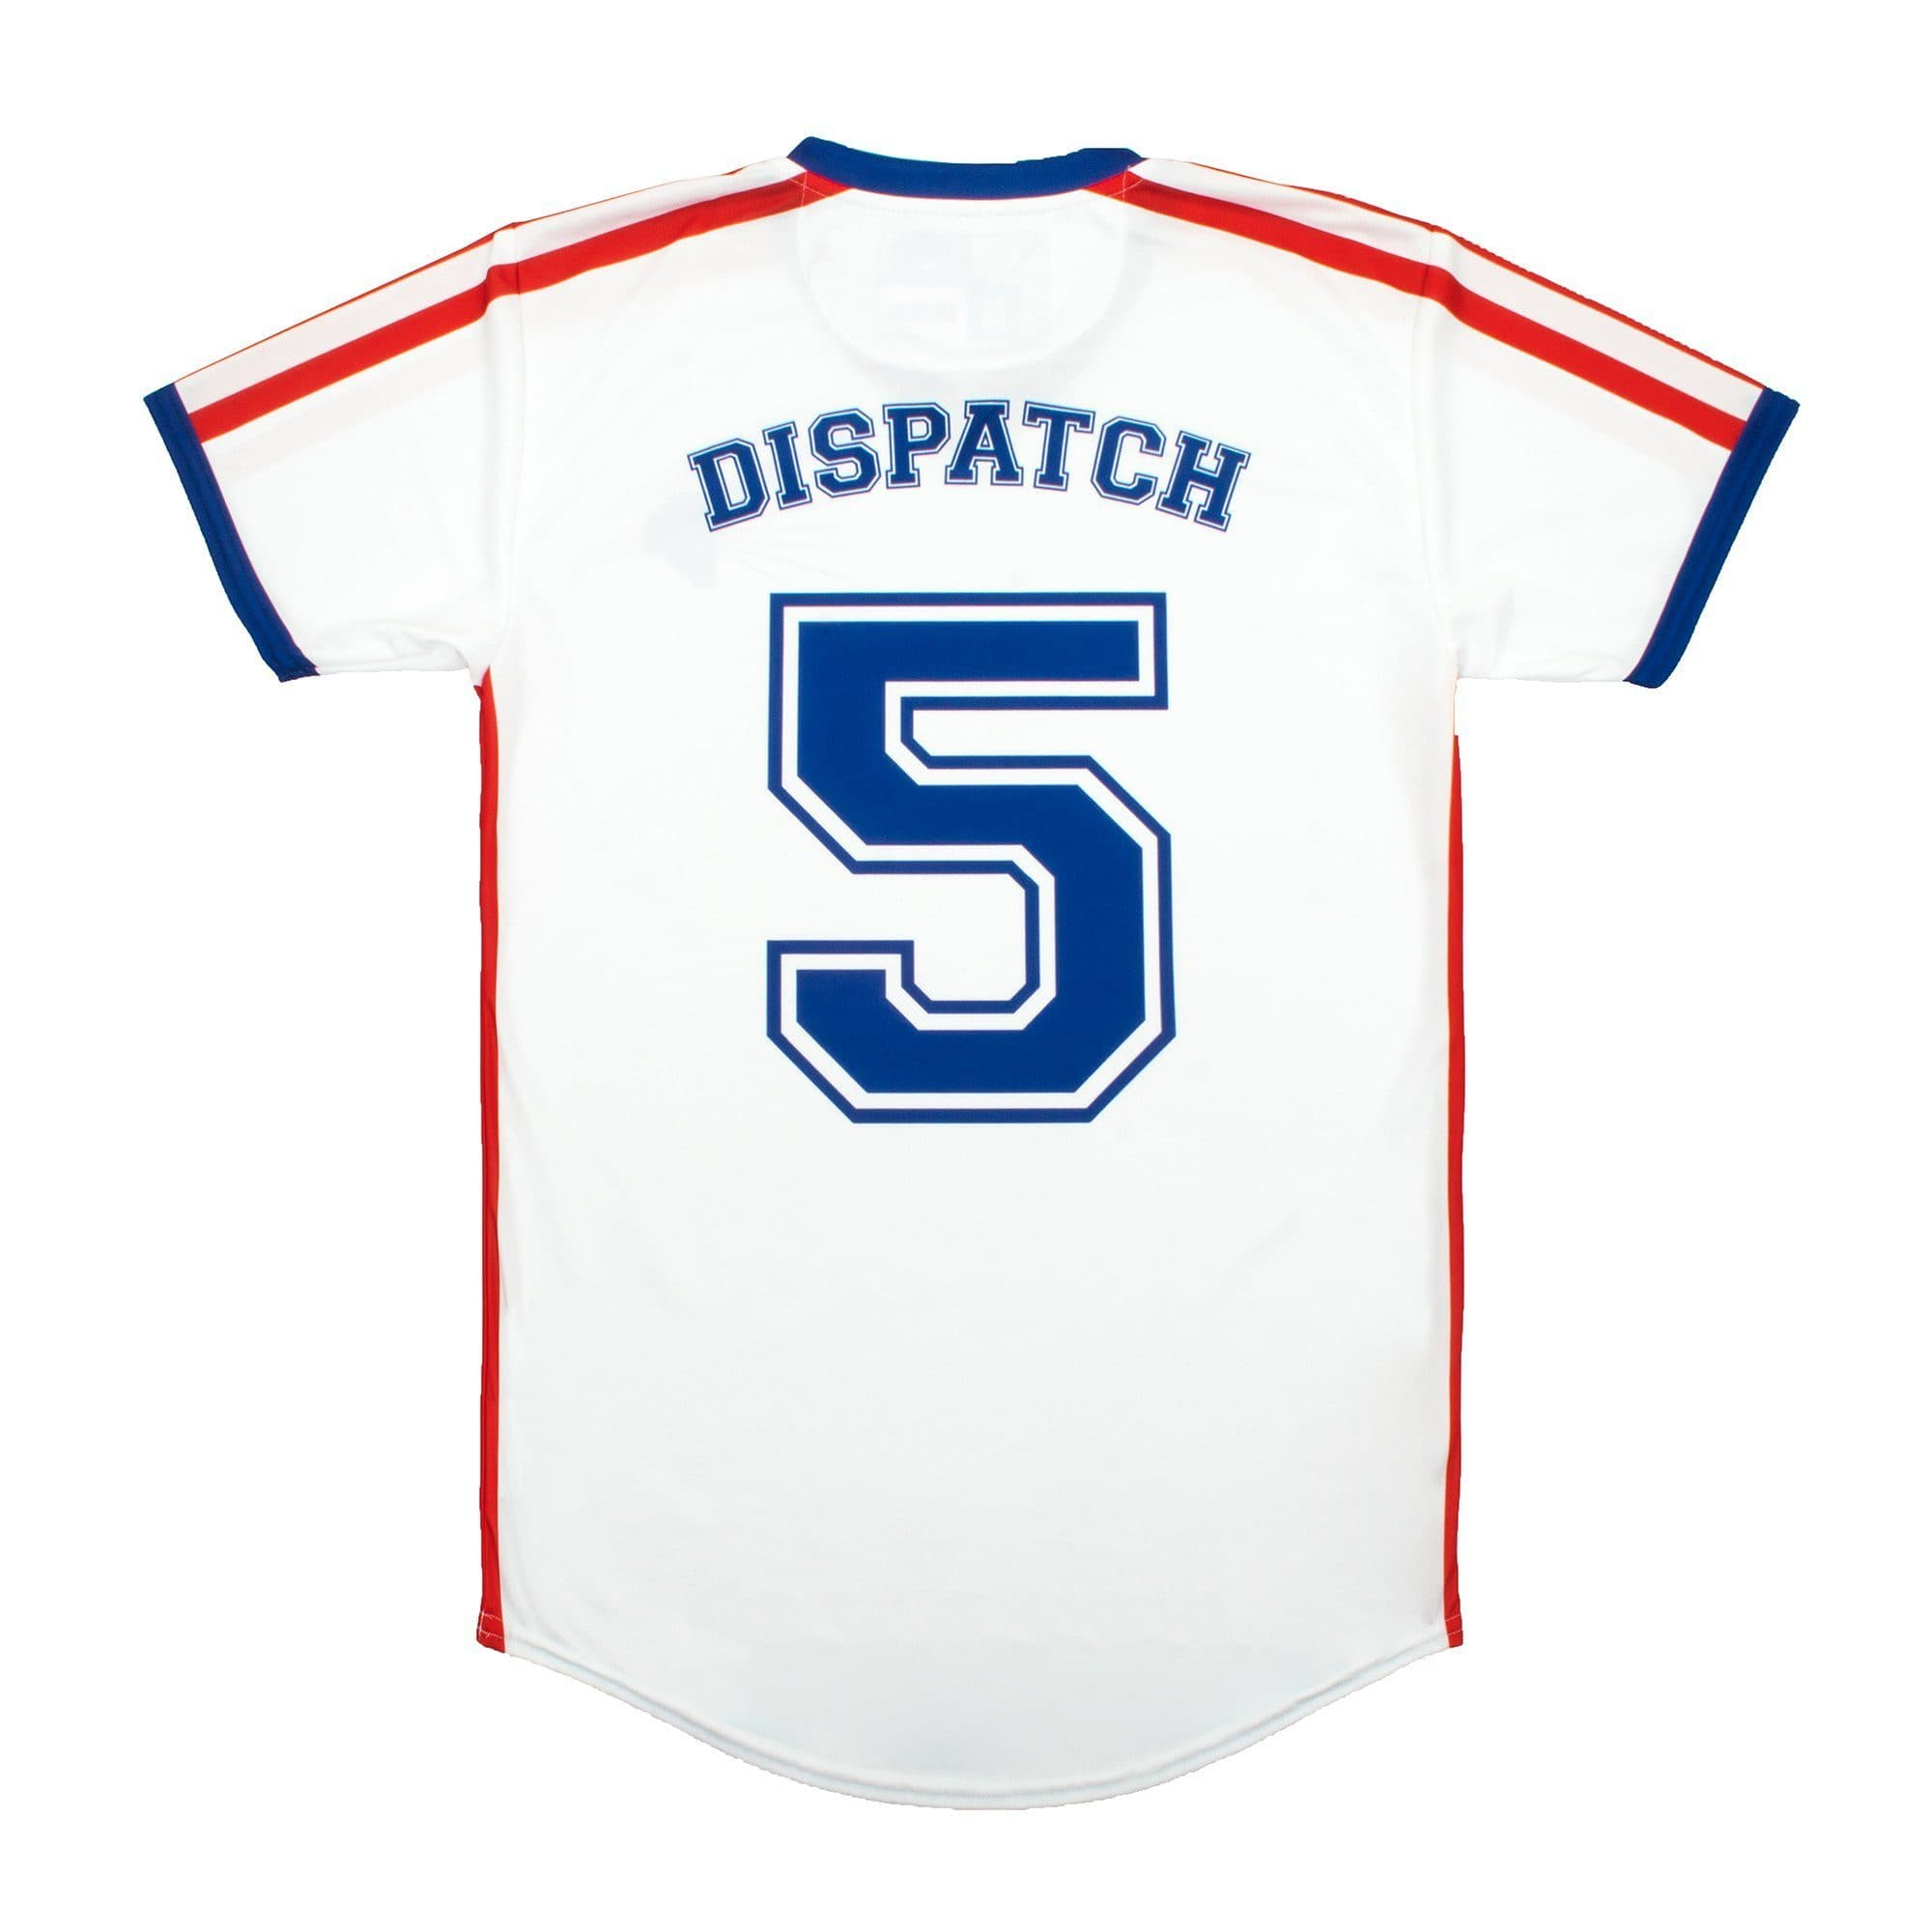 Dispatch 'USA' Soccer Jersey